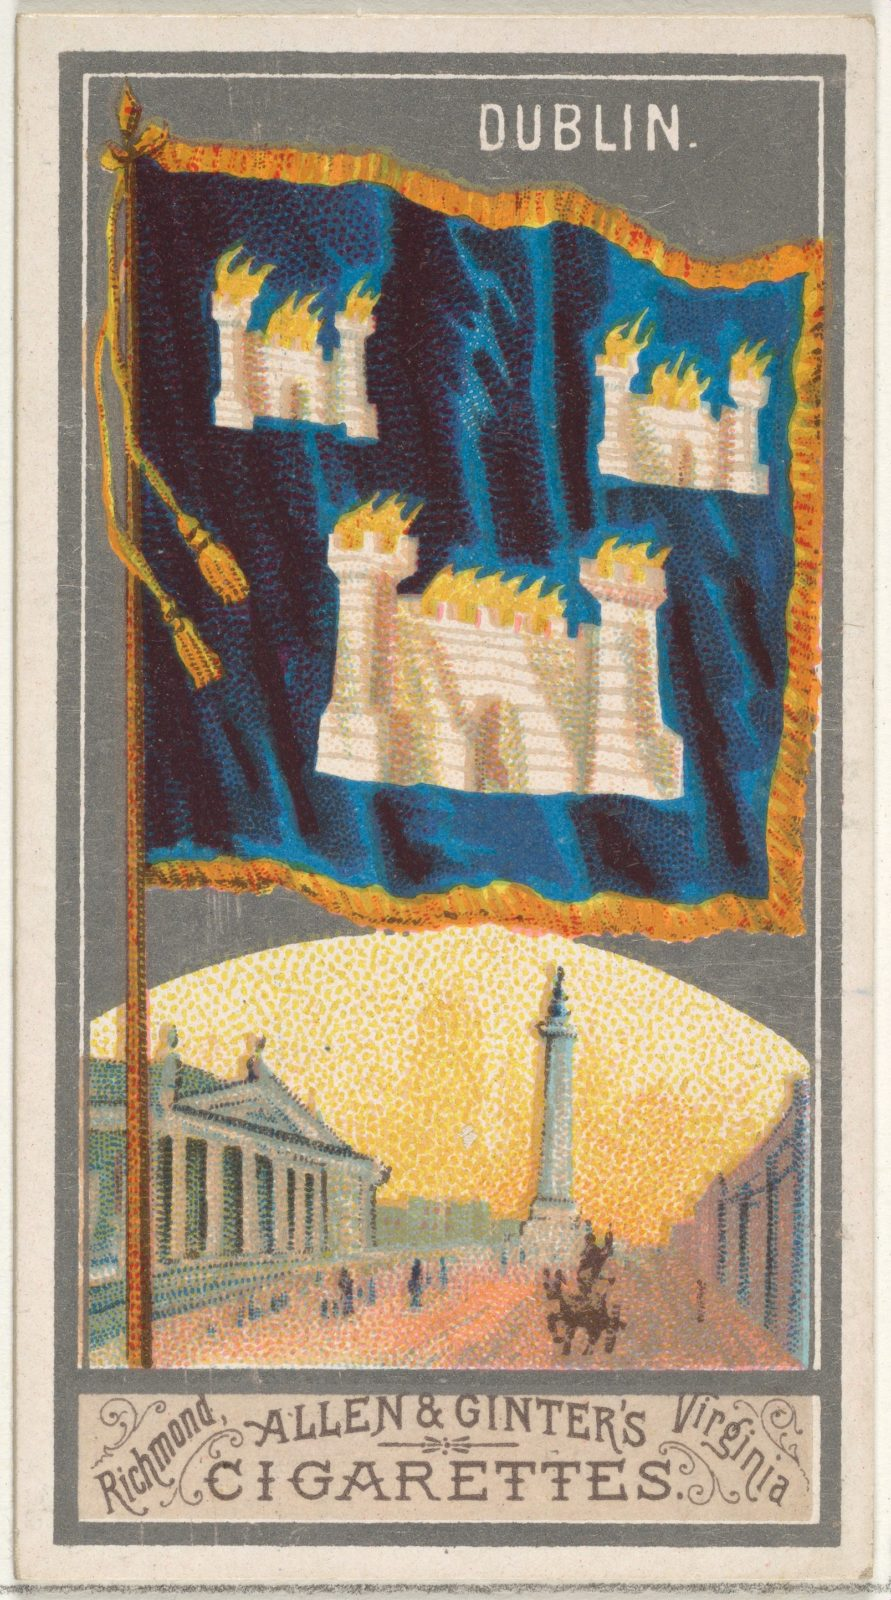 Dublin, from the City Flags series (N6) for Allen & Ginter Cigarettes Brands